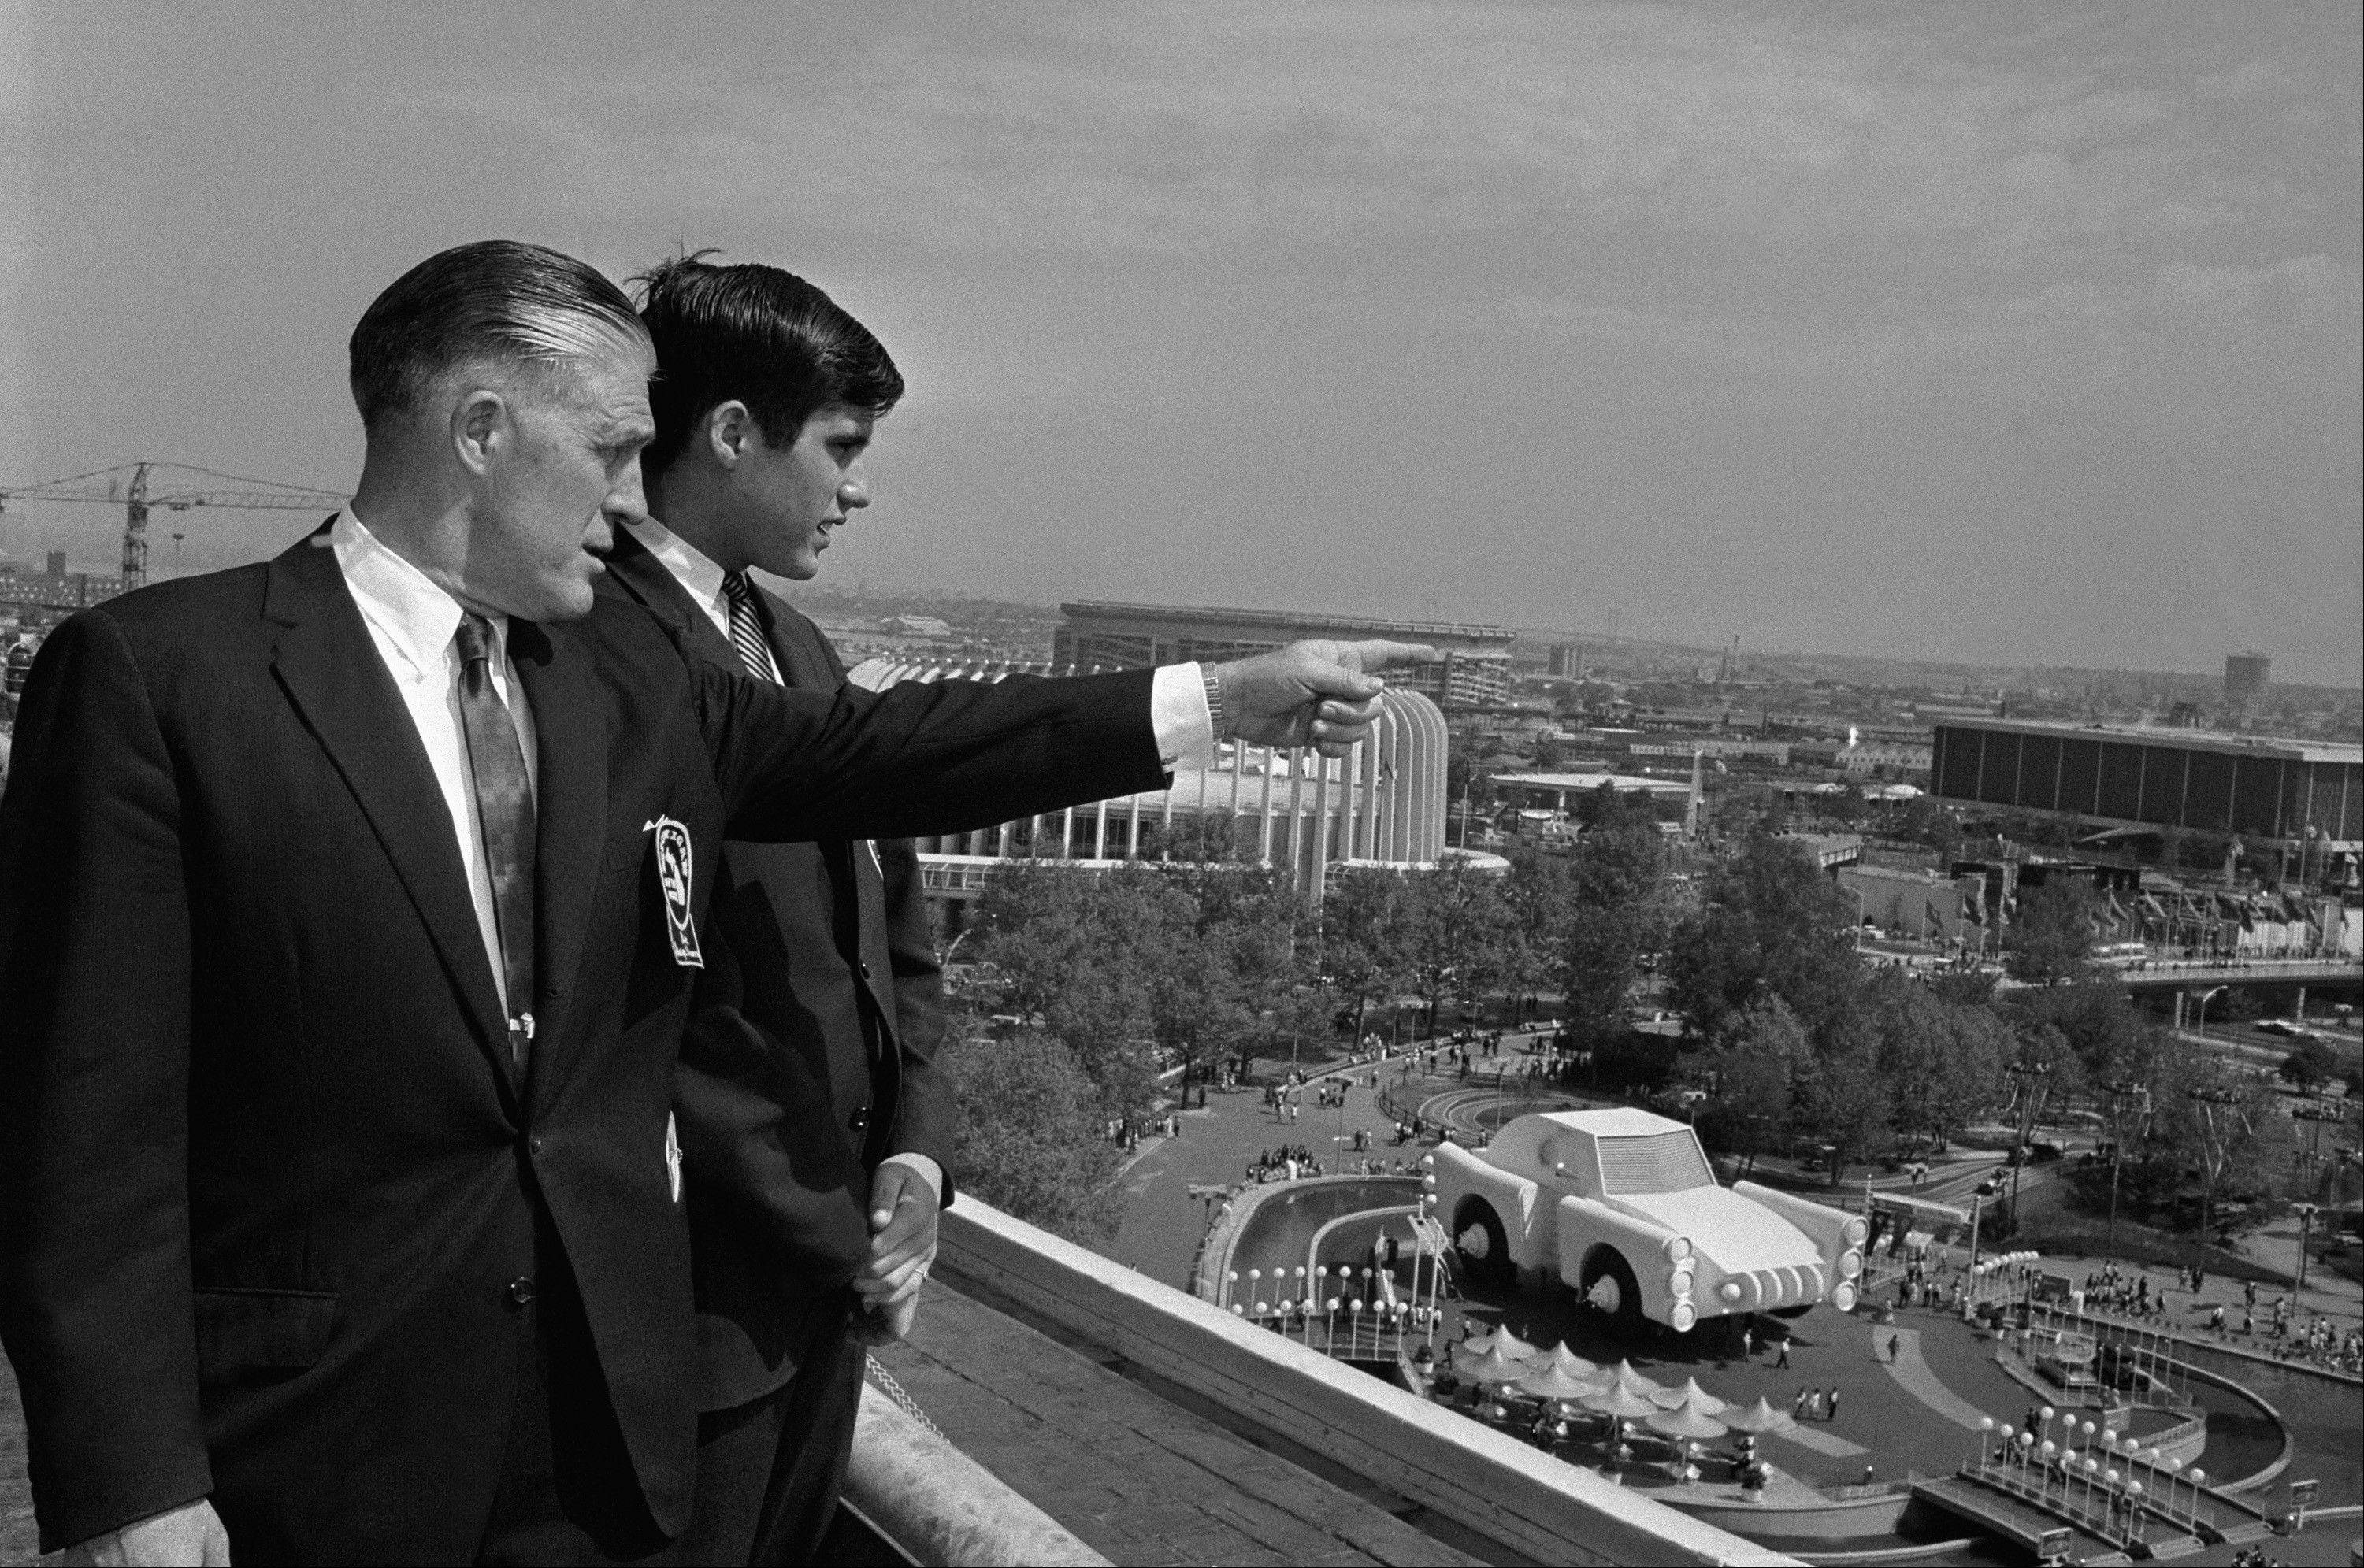 Gov. George Romney and his son, Mitt, look out over the New York World's Fair grounds from the heliport after attending a Michigan breakfast at the Top of the Fair Restaurant.